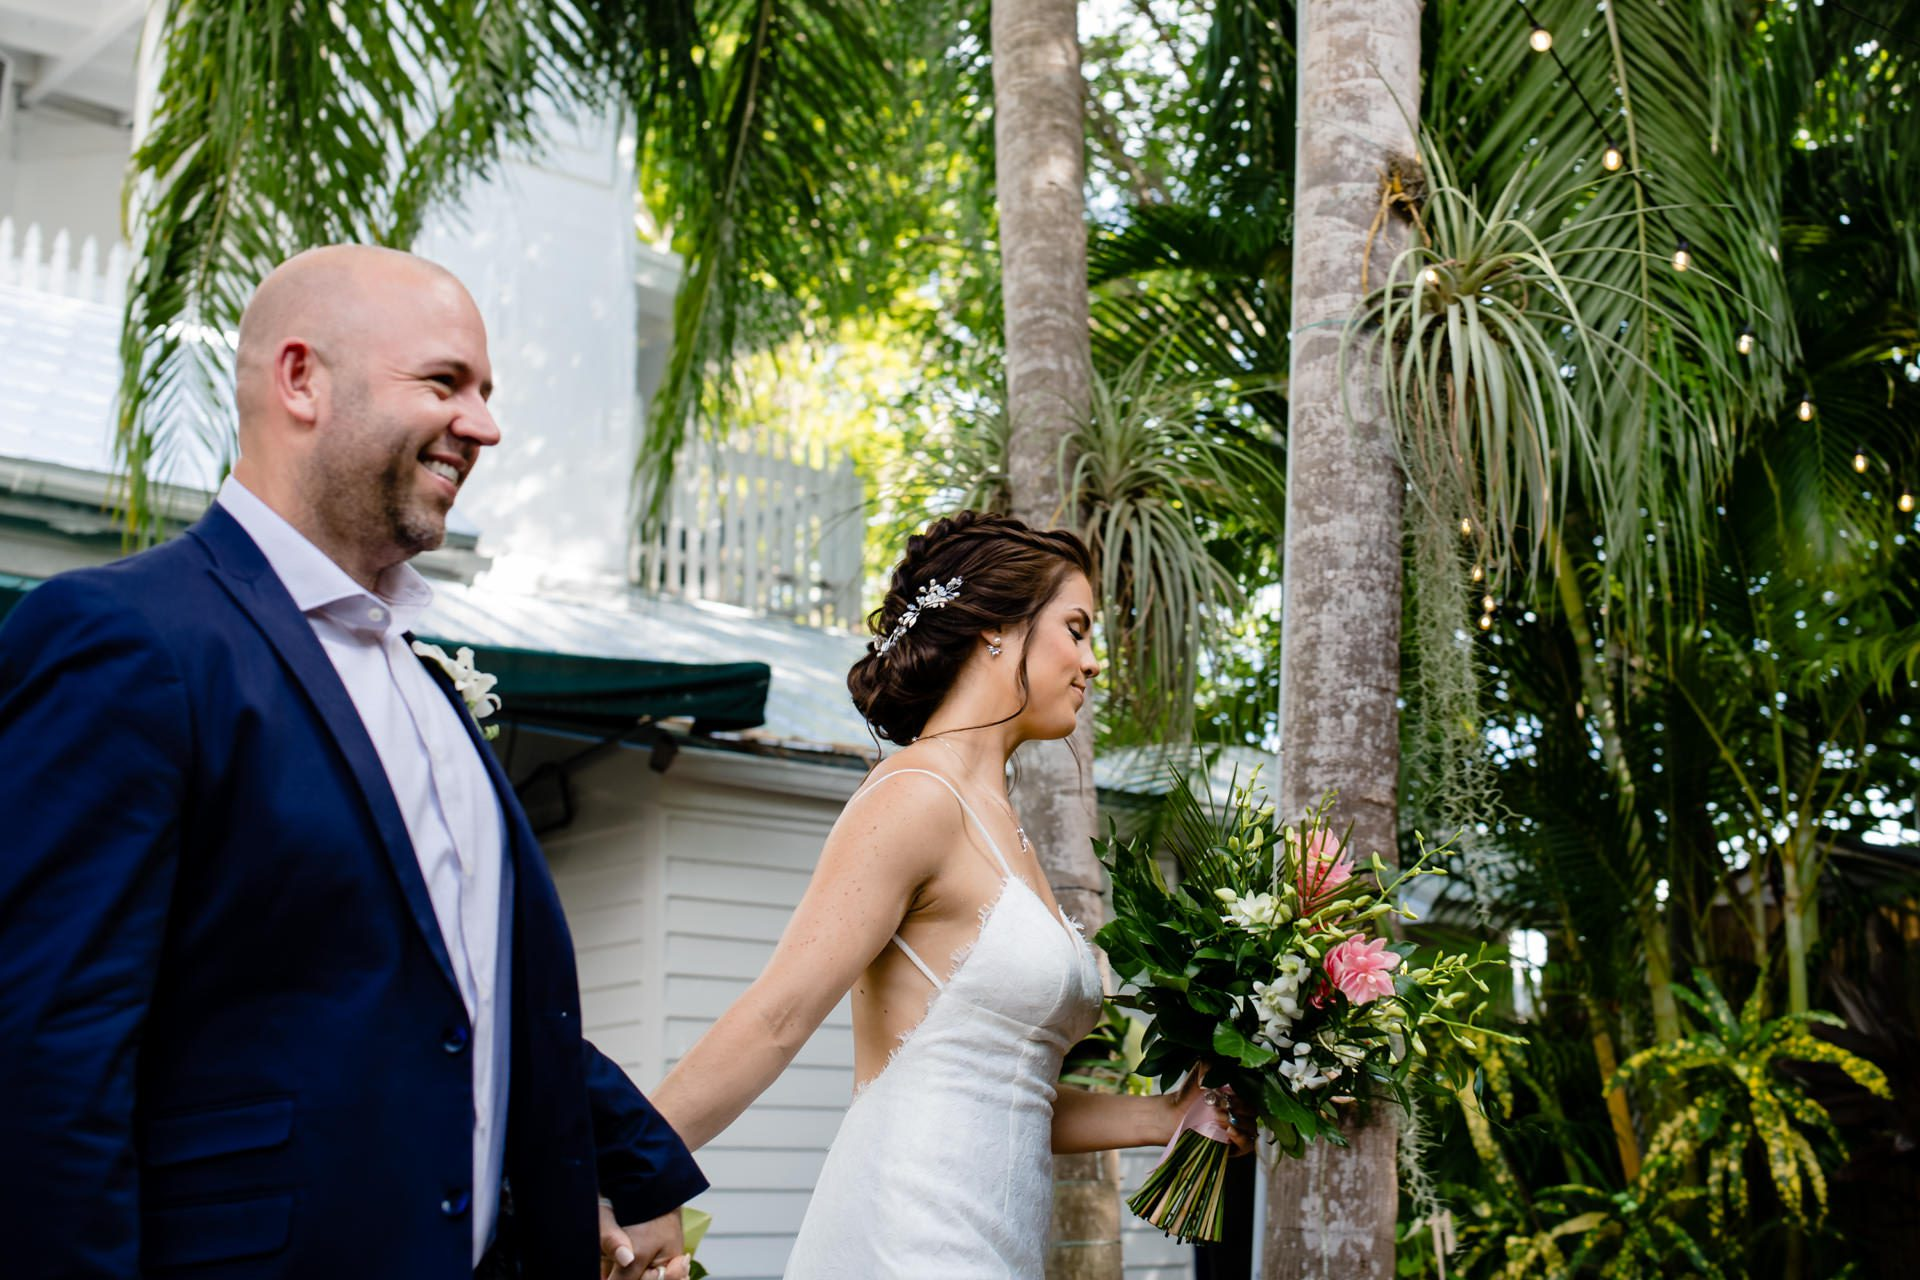 Bride holding flowers and walking with her groom to be eloped in Key West.